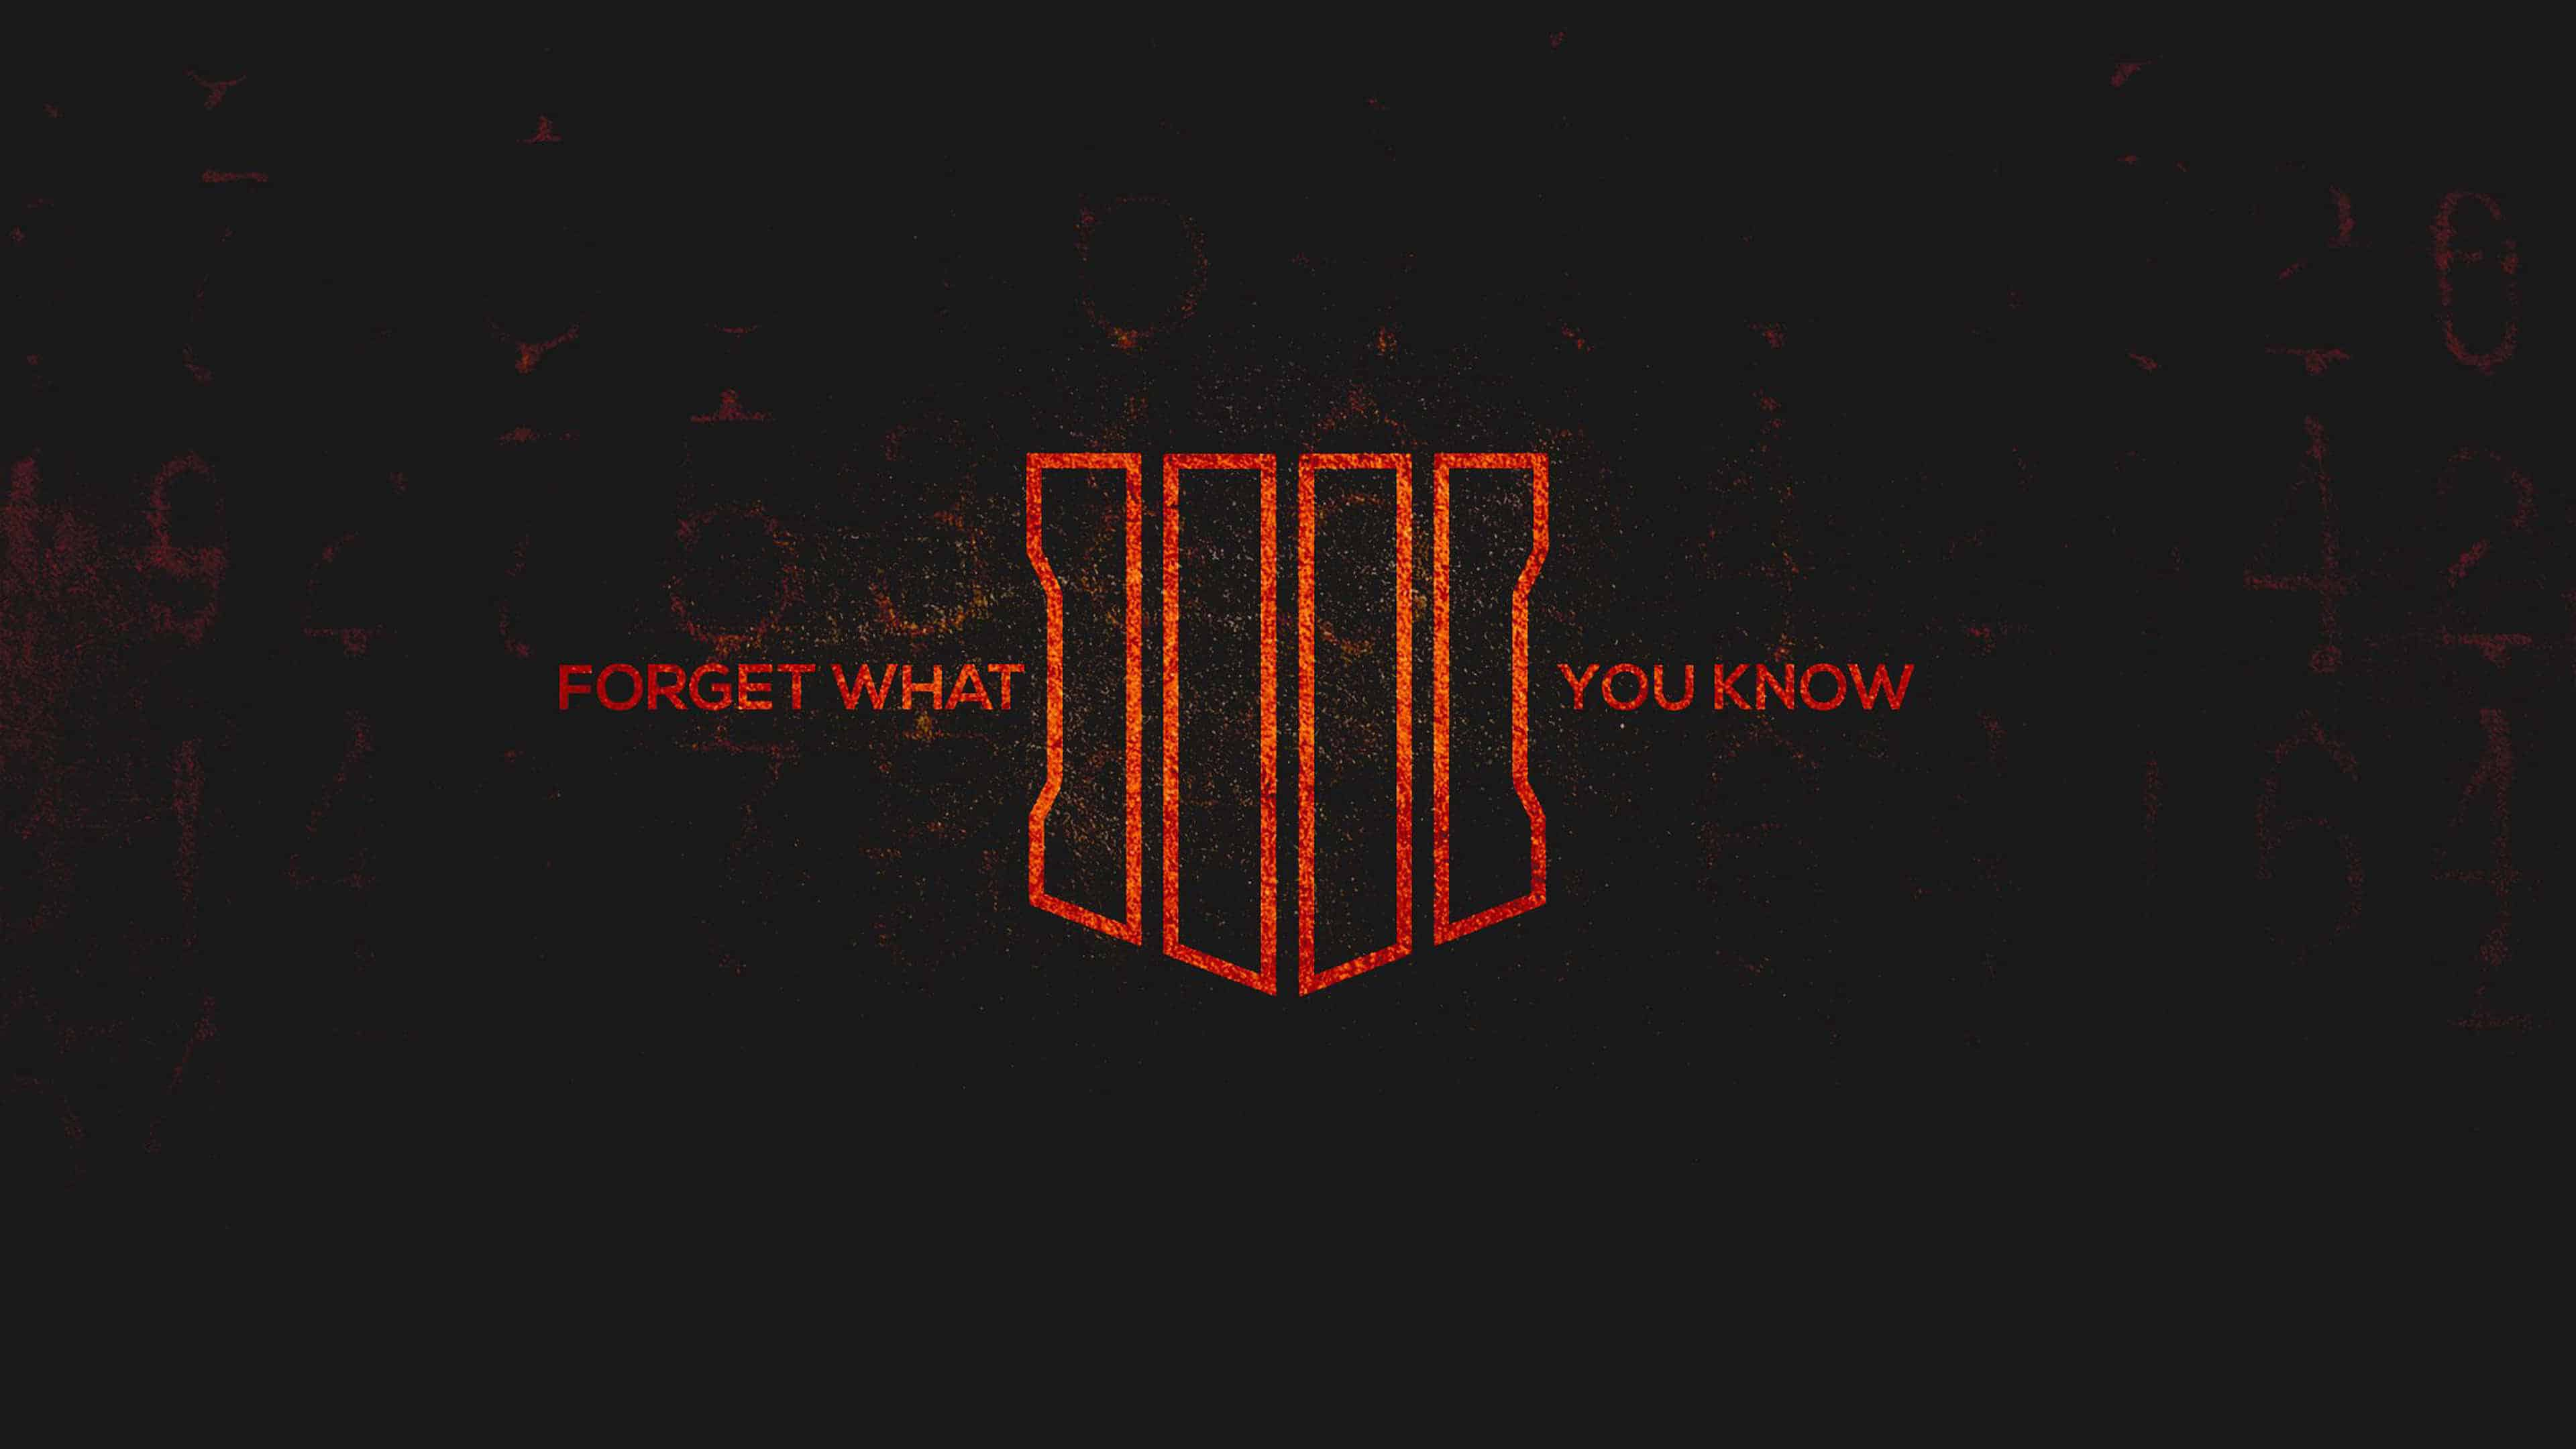 Call Of Duty Black Ops 4 Forget What You Know Uhd 4k Wallpaper Pixelz